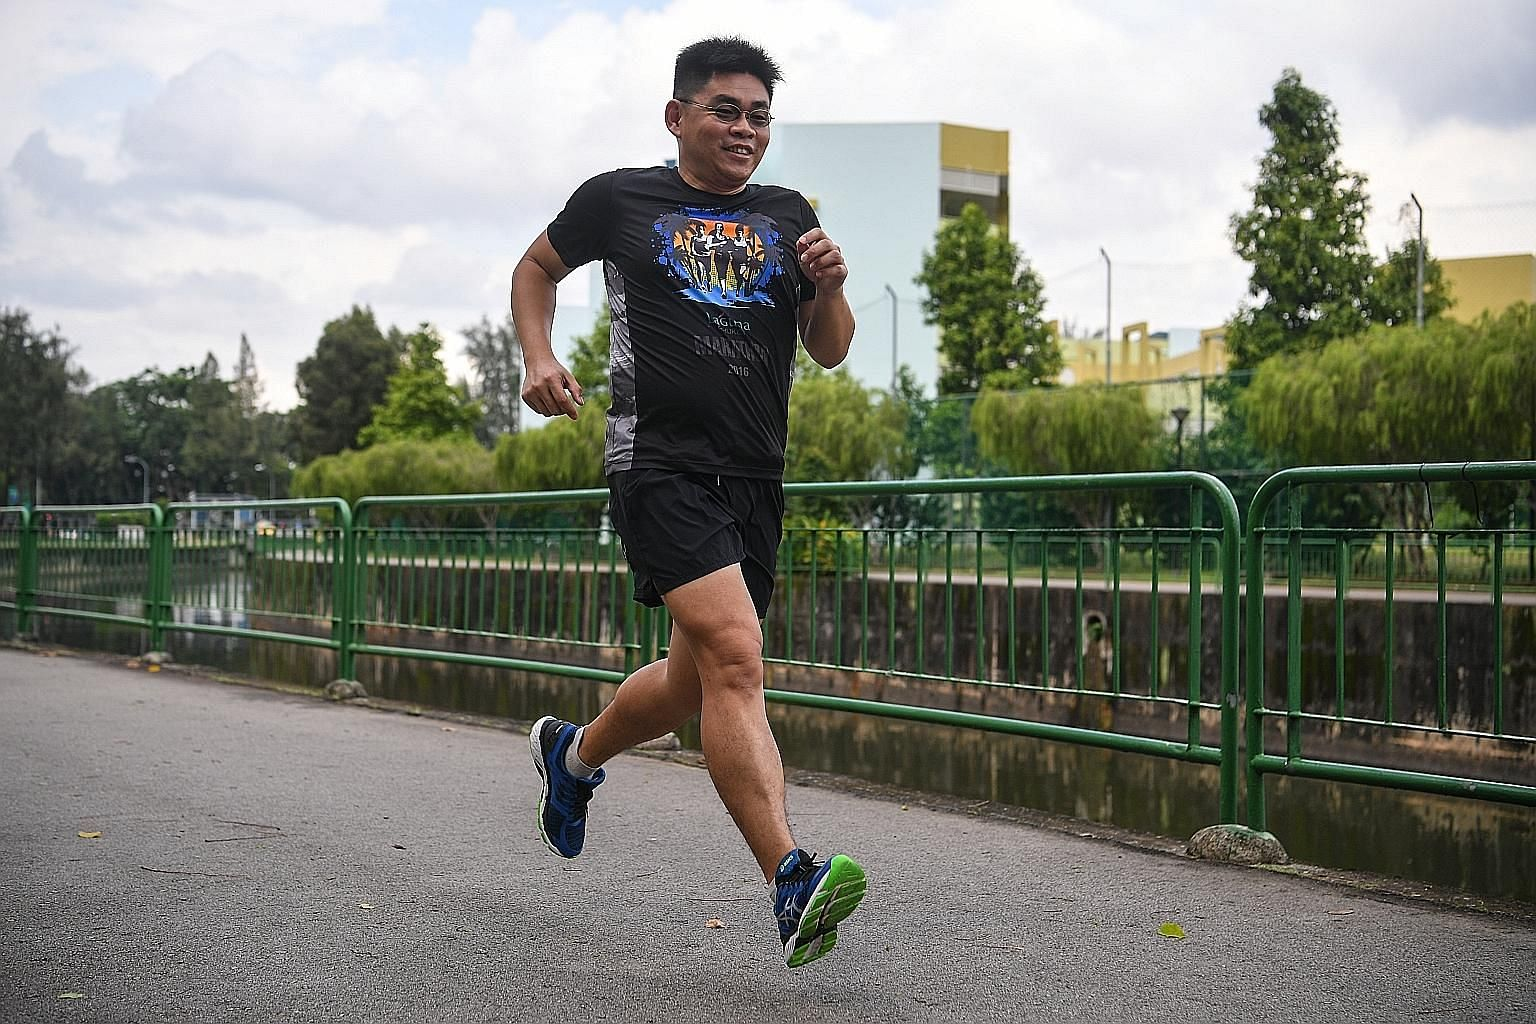 Mr Sunny Tan, 41, started taking running seriously during national service. He ran his first marathon when he was 26.